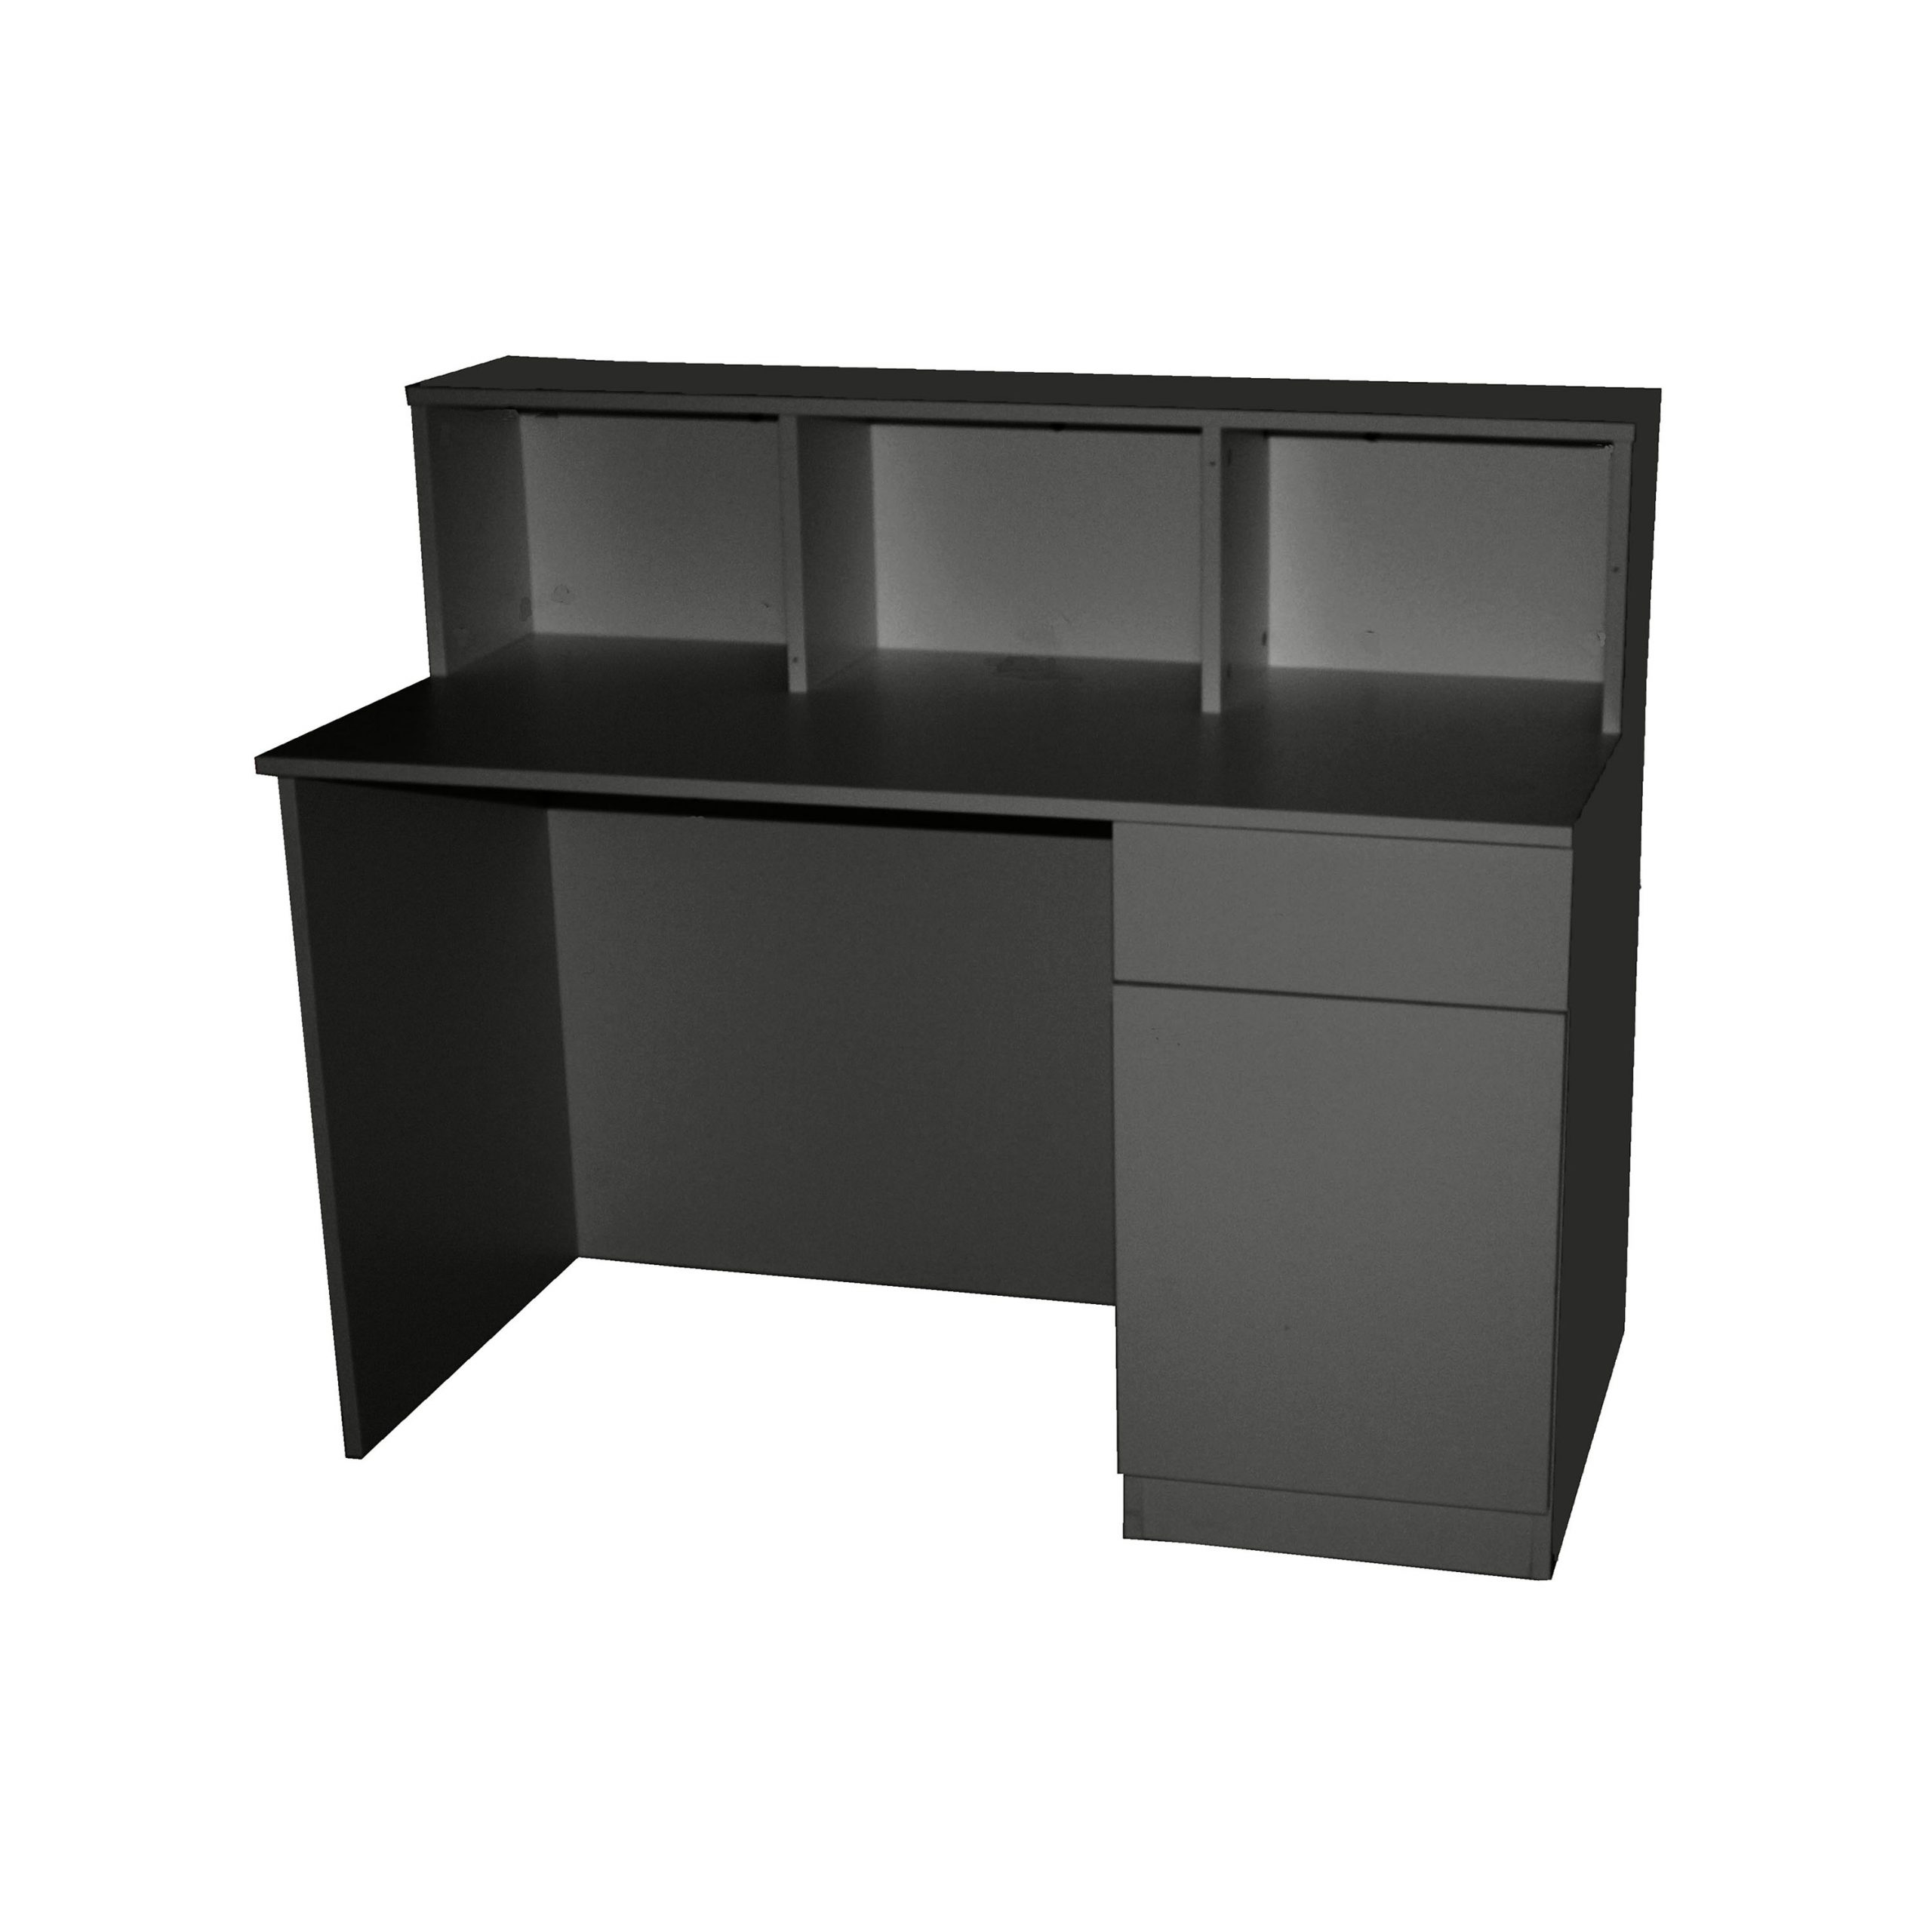 Brand New Small Charcoal Reception Desk Counter 1.2M